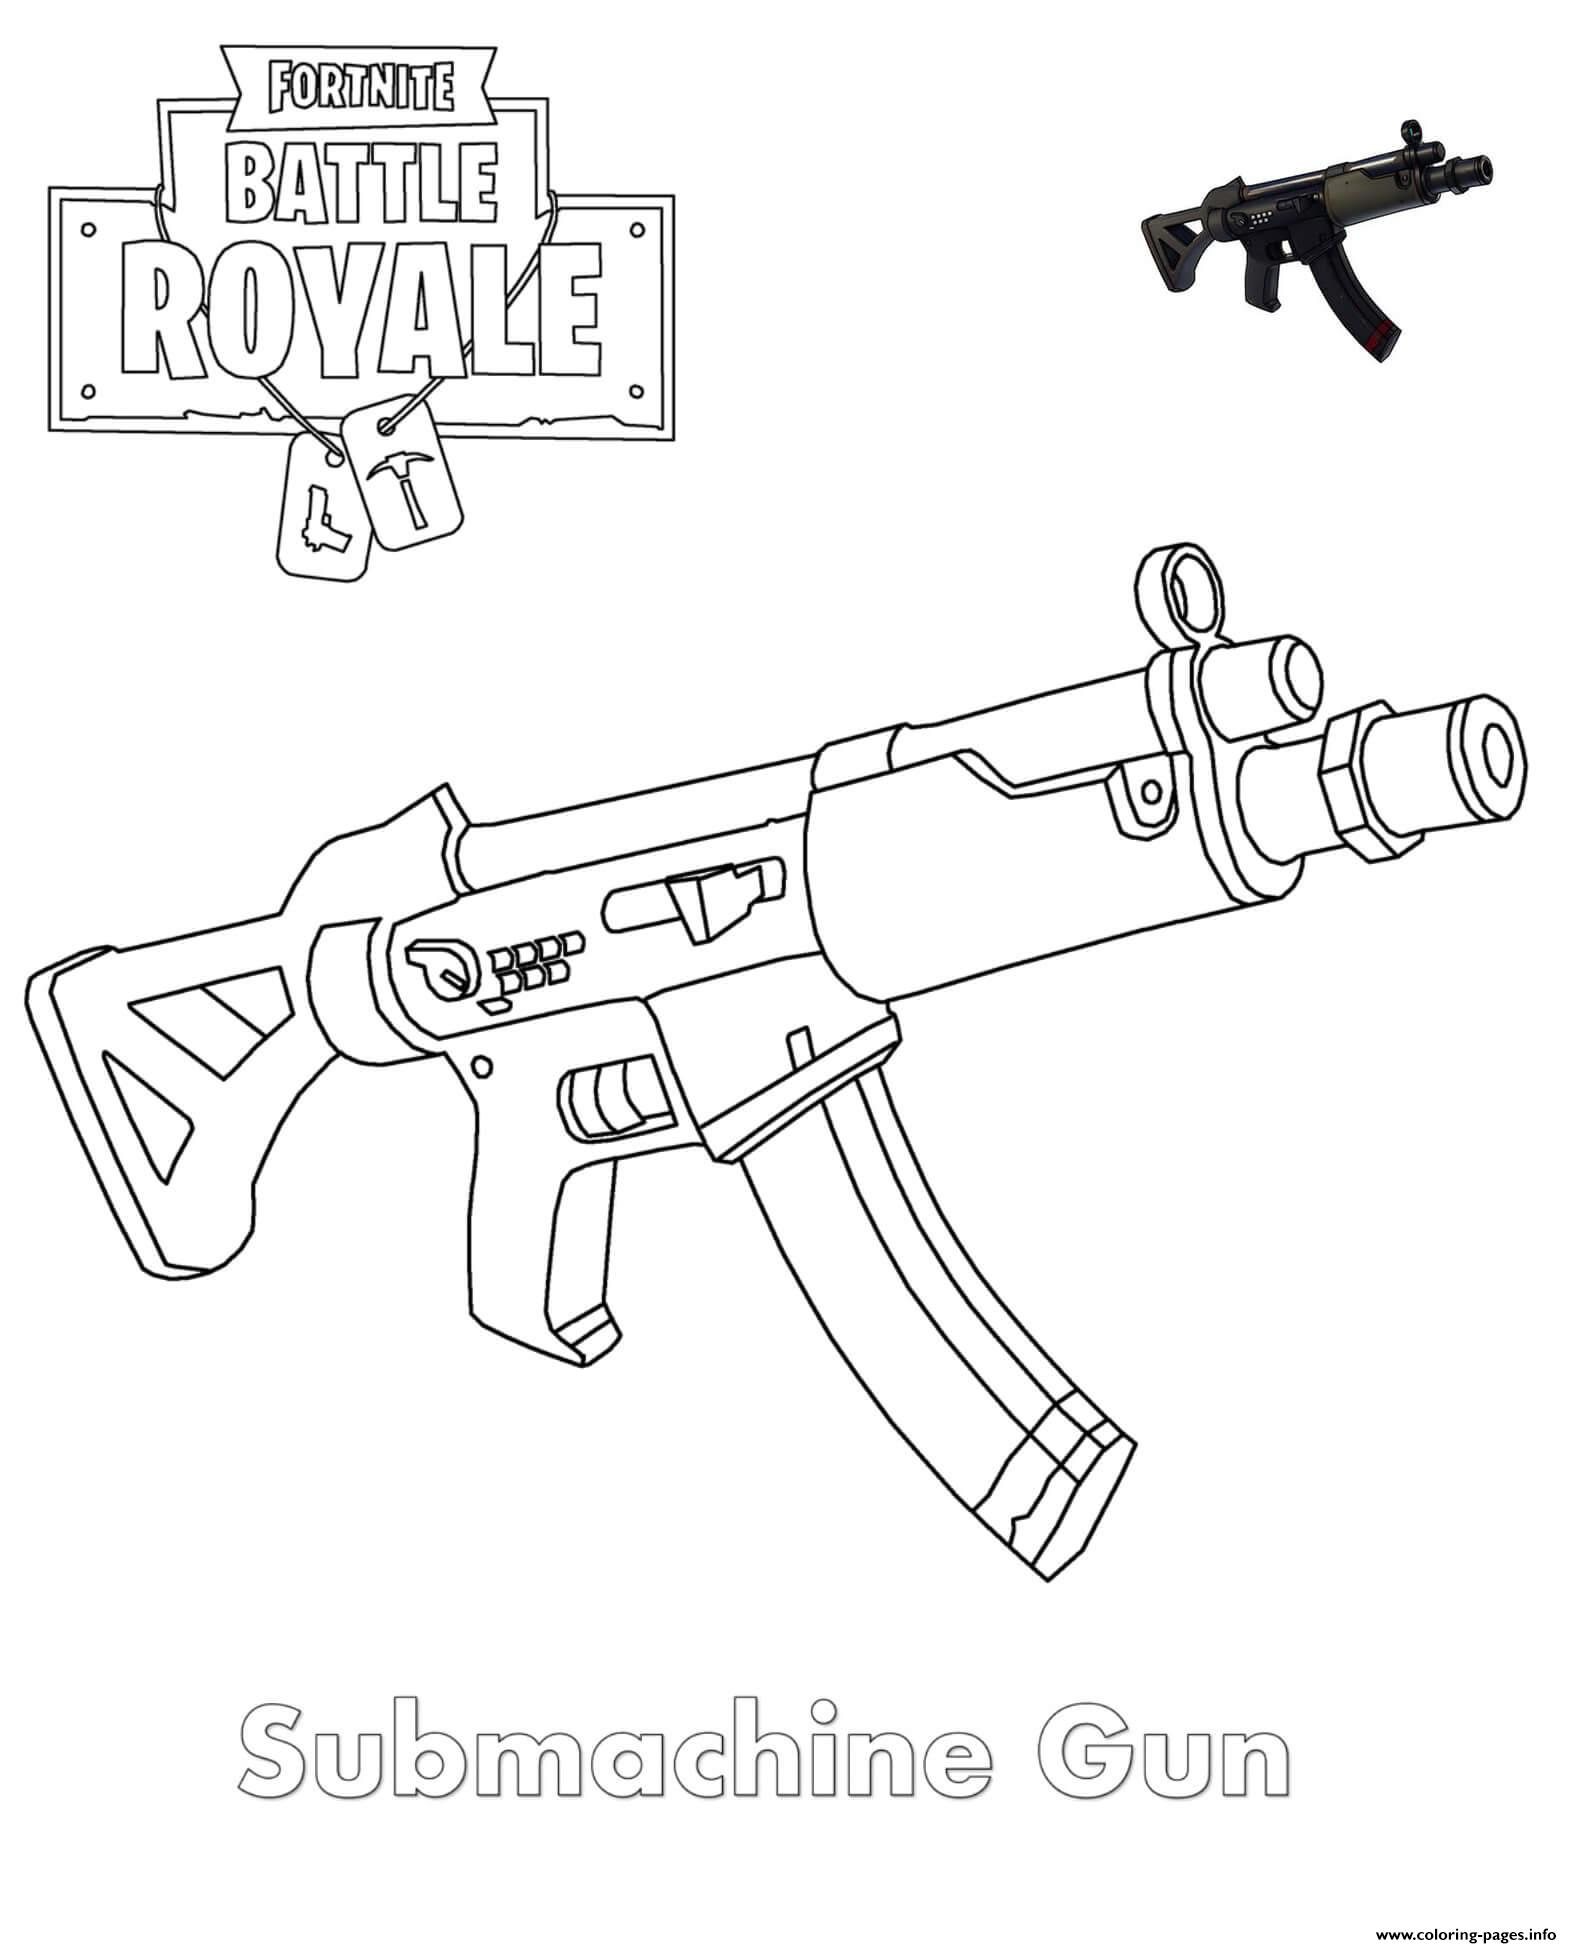 Submachine Gun Fortnite Coloring Pages Printable